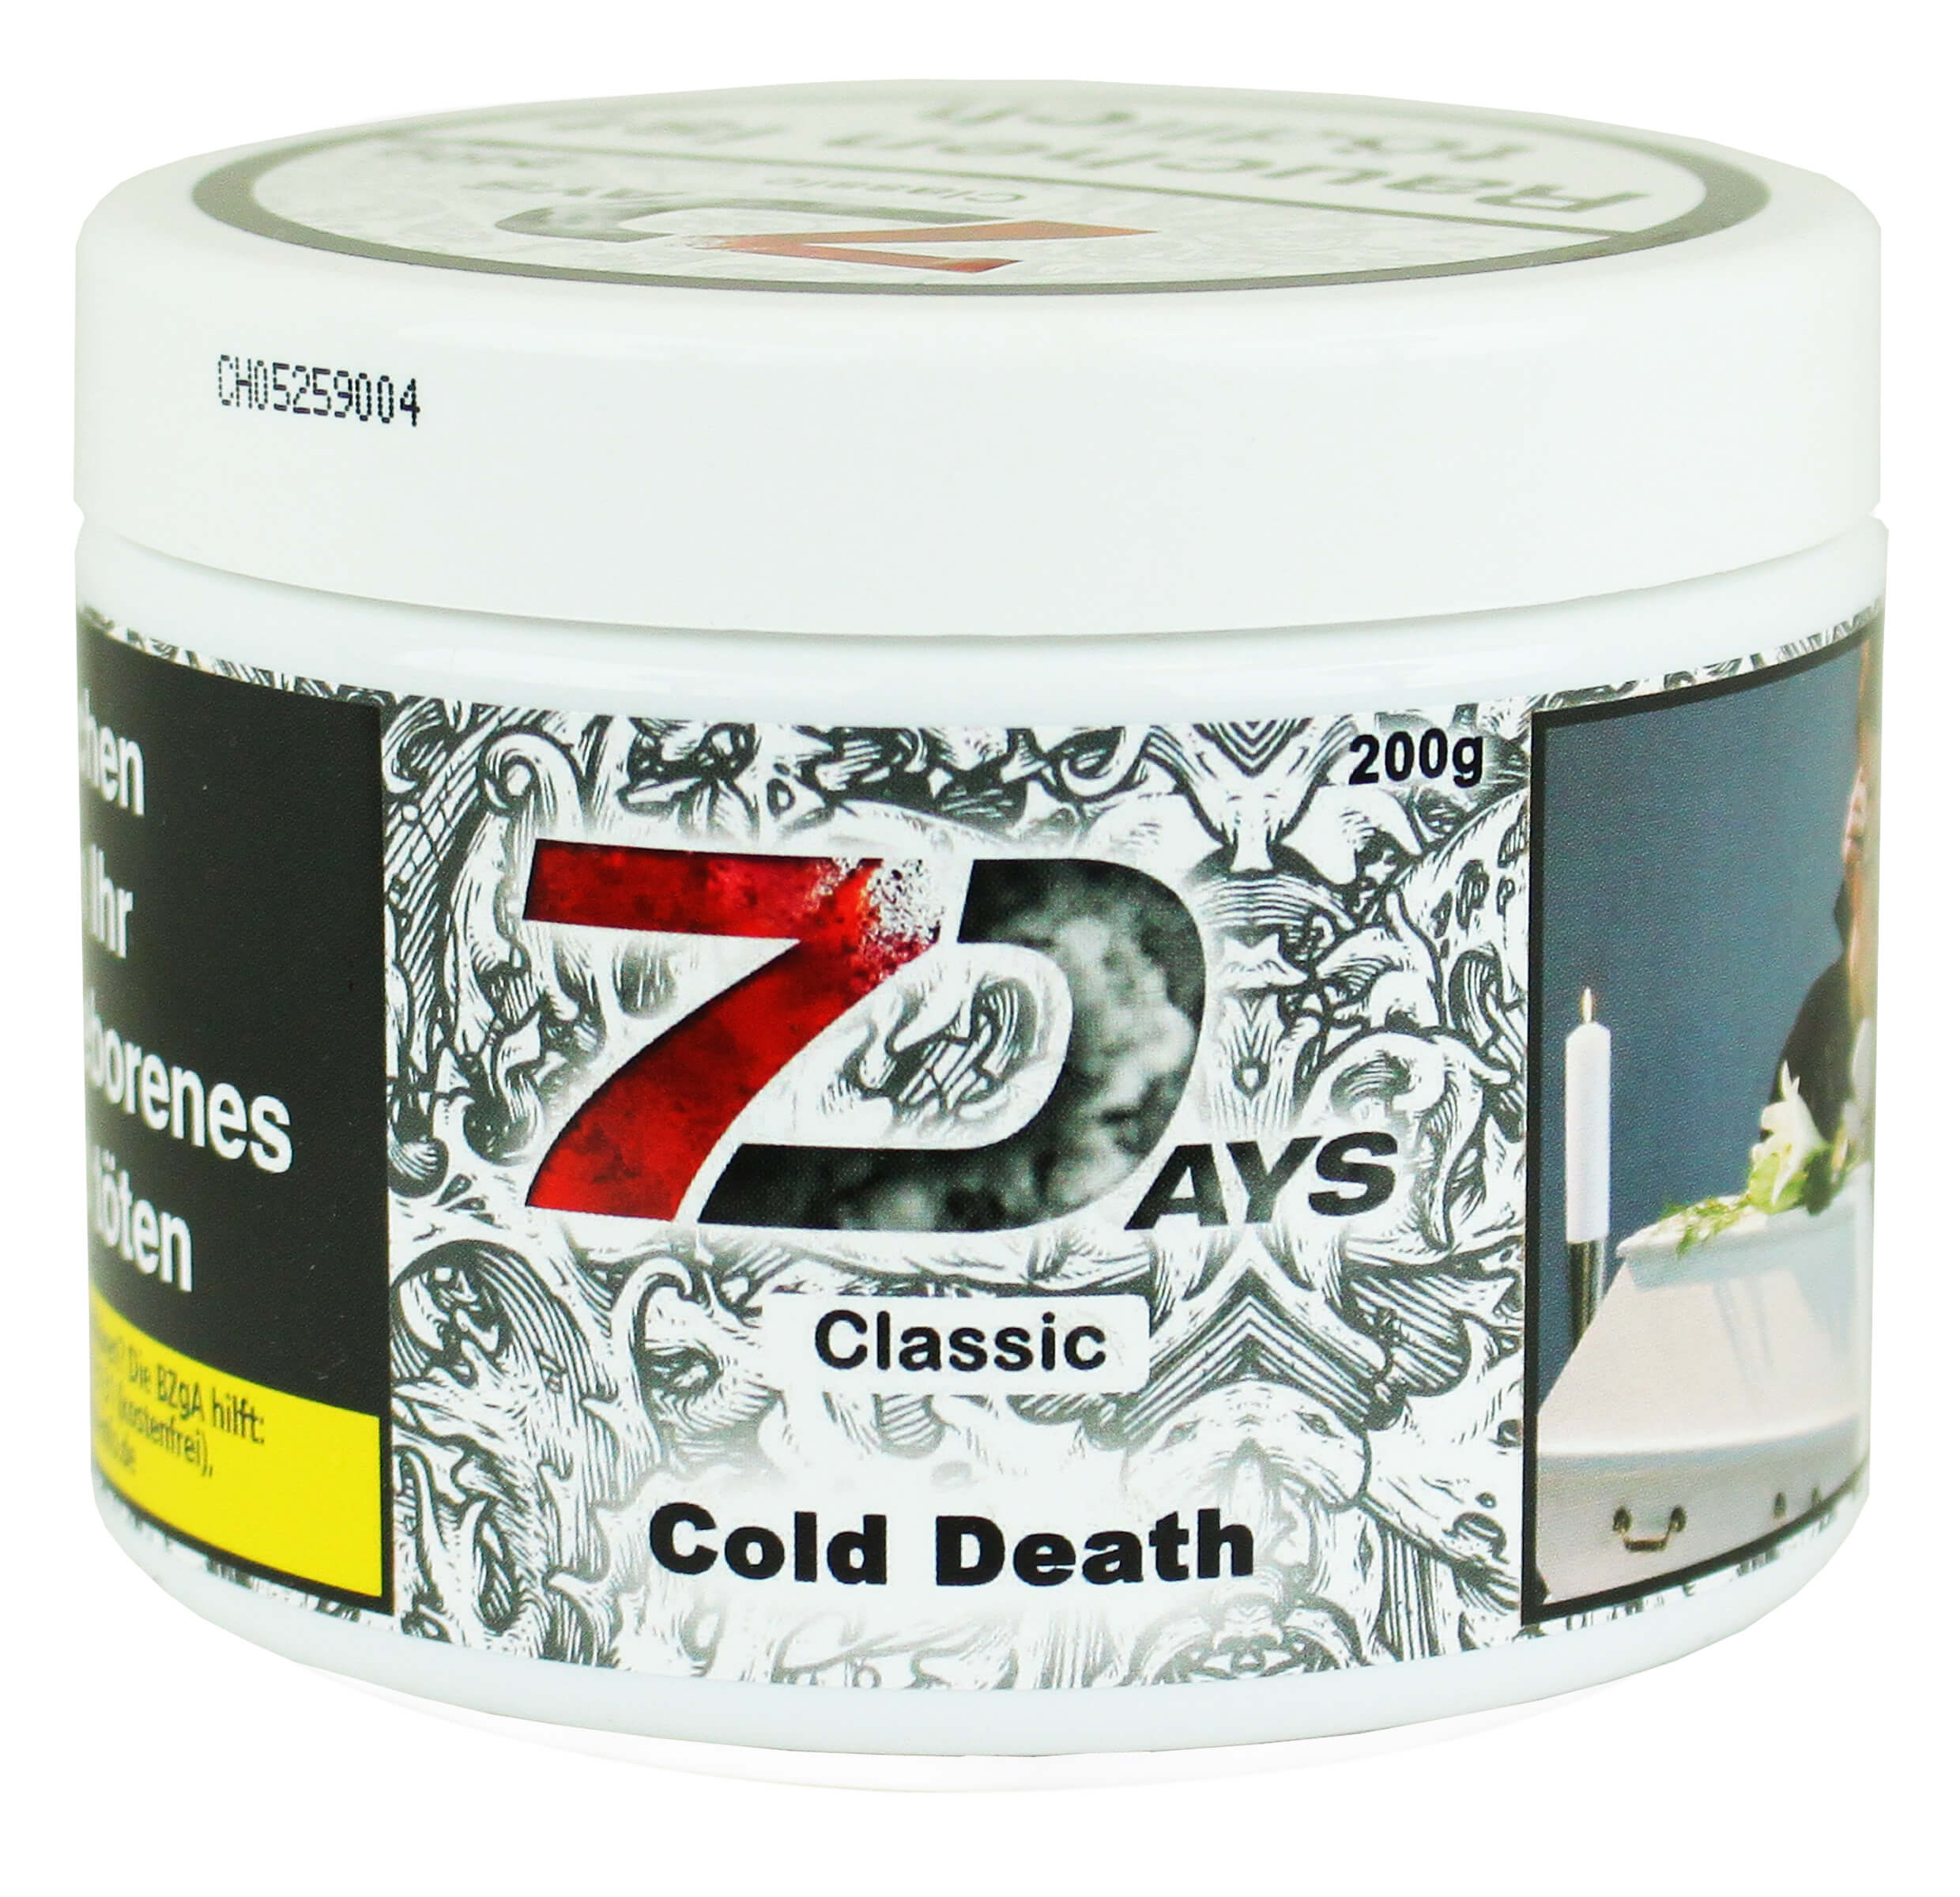 7 Days Tabak - Cold Death Classic 200g